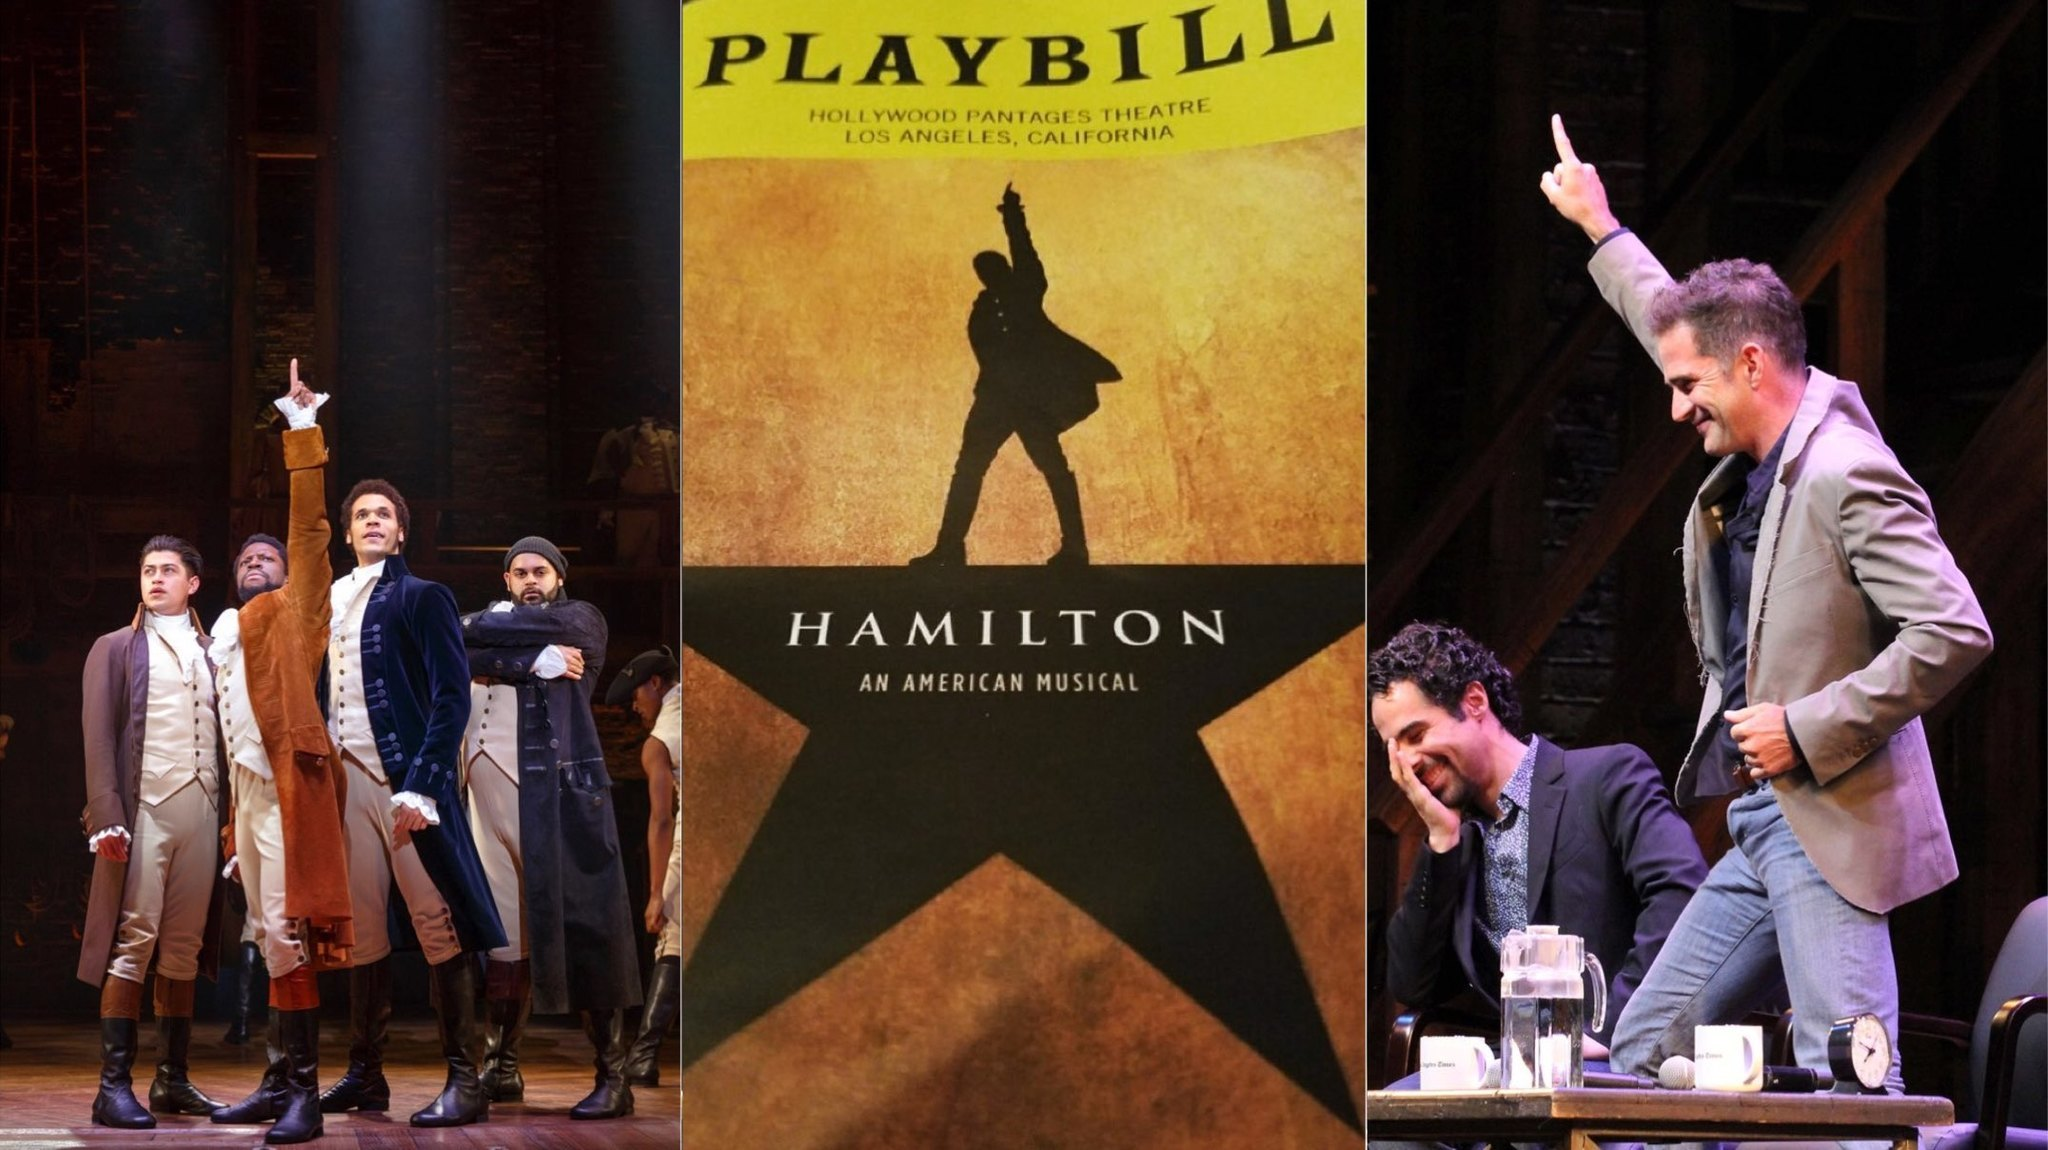 How the 'Hamilton' silhouette became the musical's iconic